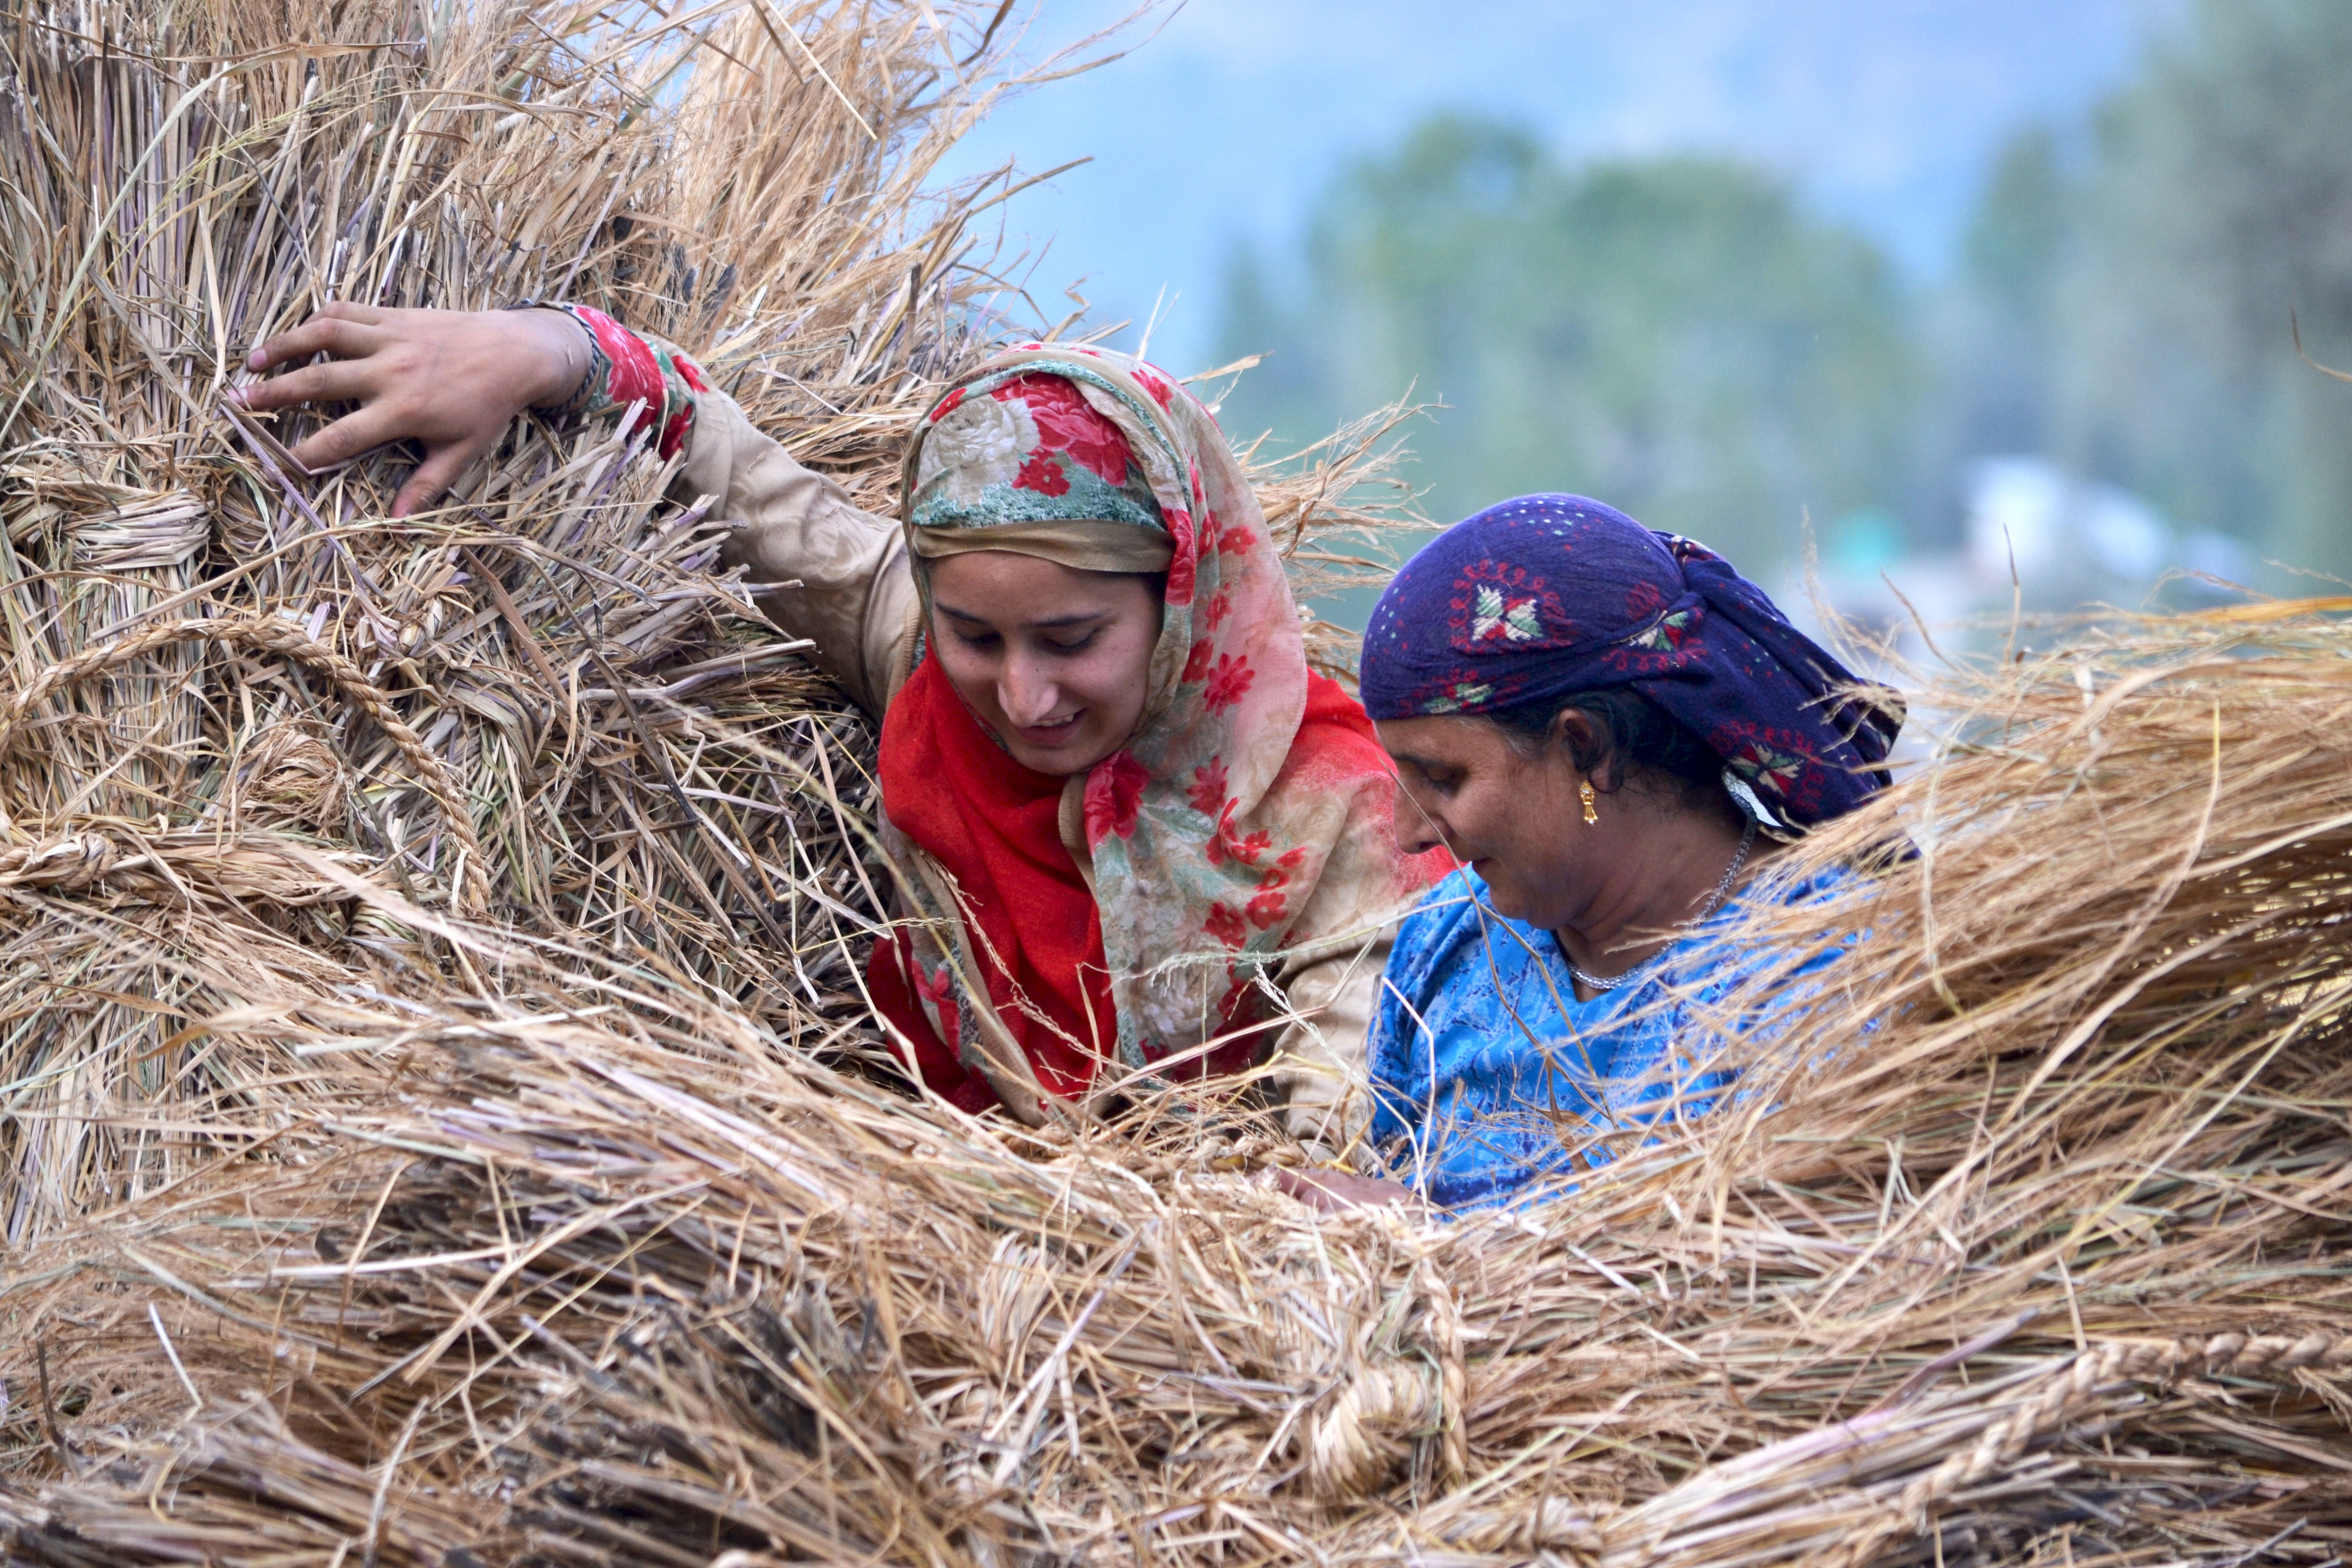 Kashmiri women farmers carry lumps of grass during harvesting of rice, in the outskirts of Srinagar, the summer capital of Indian administered Kashmir.